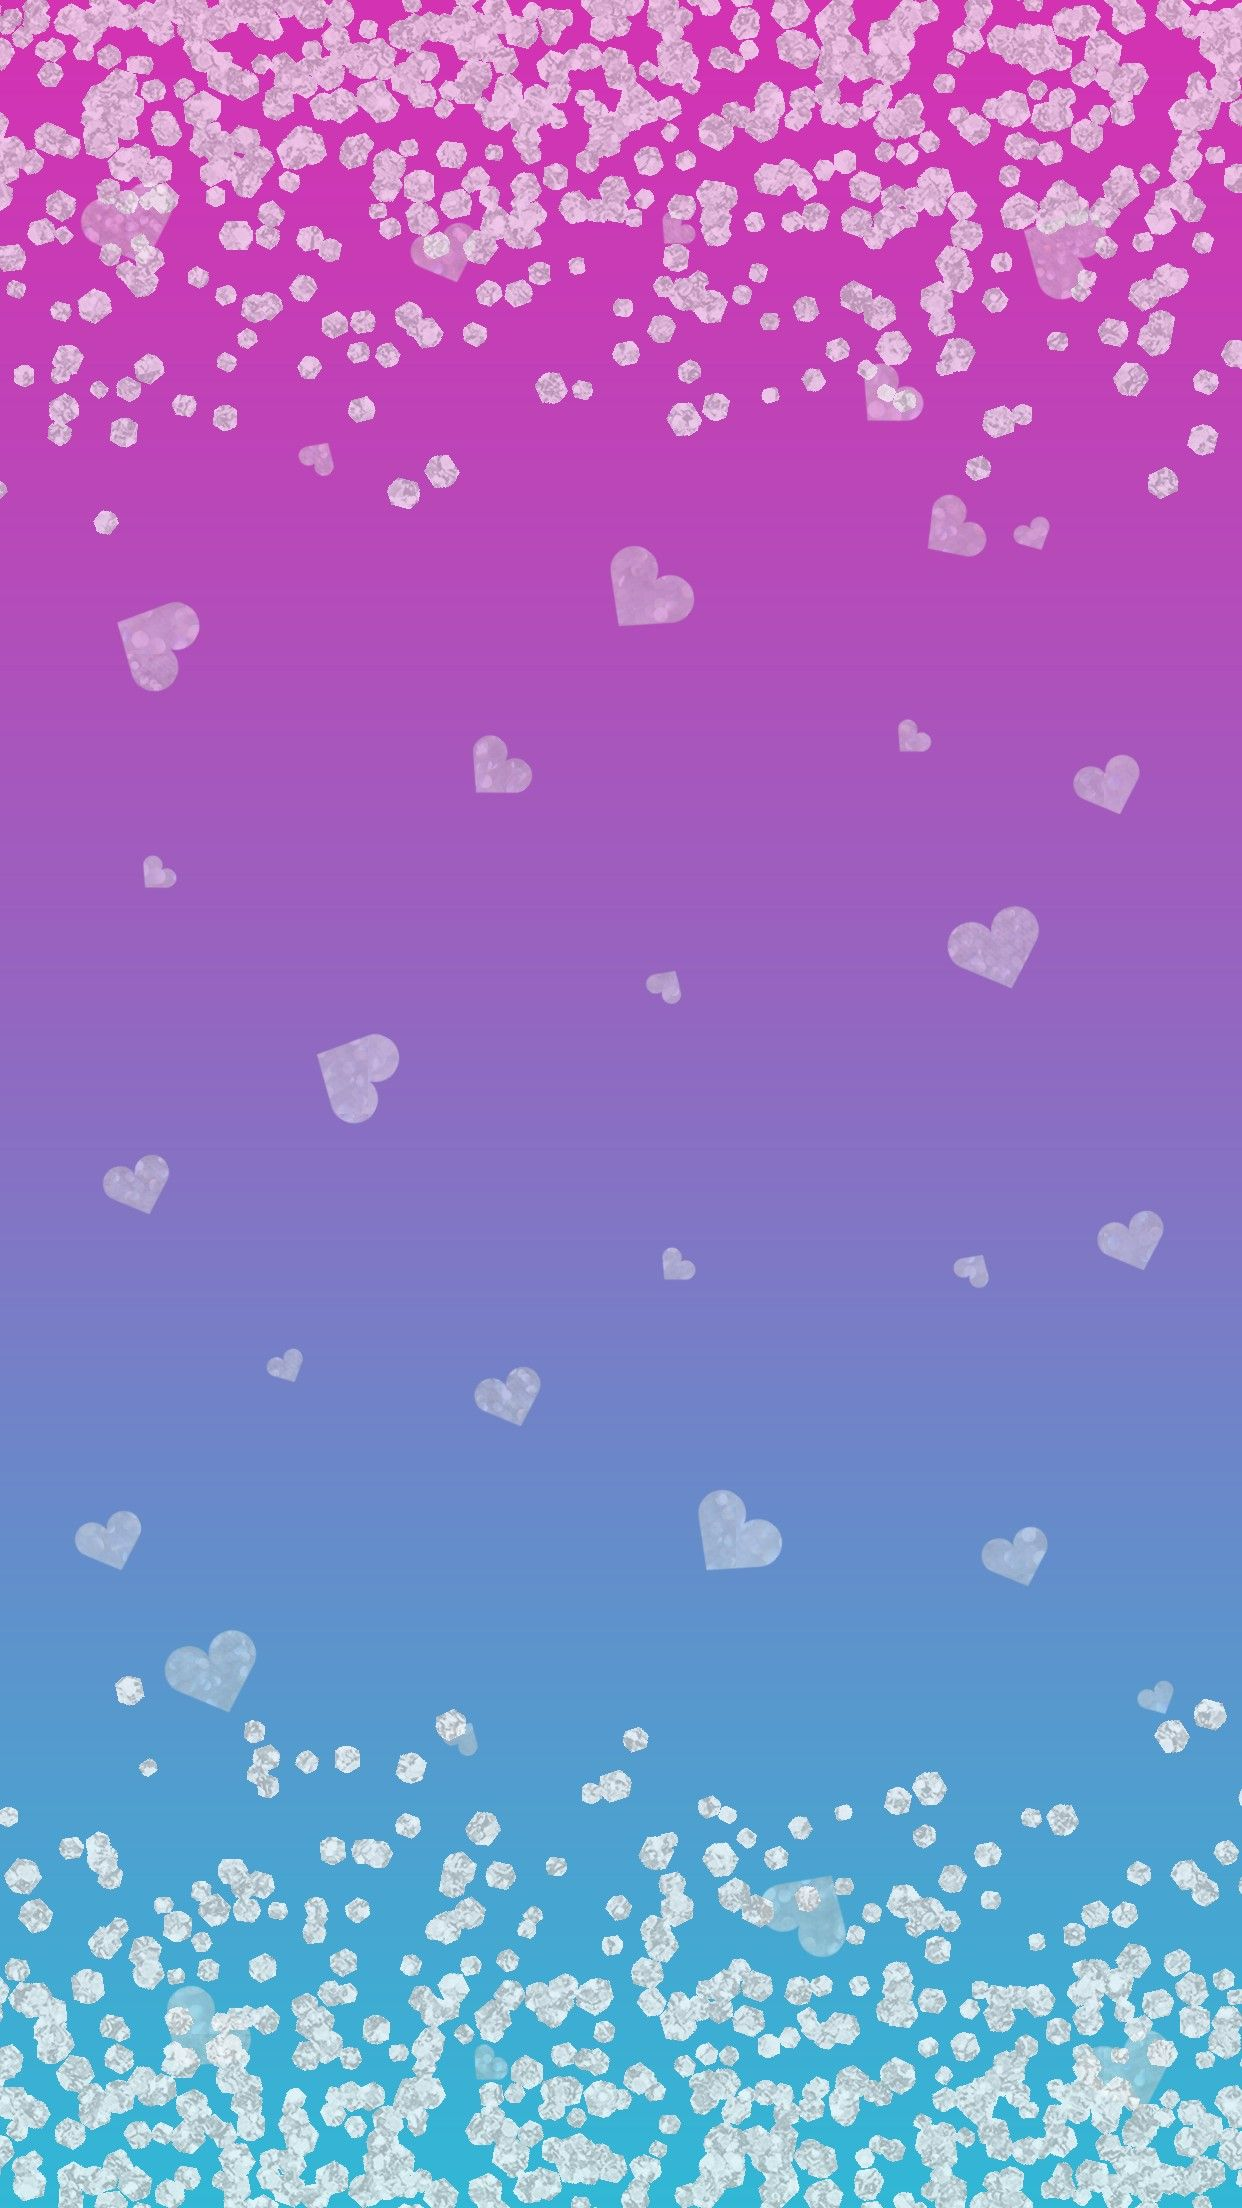 pretty blue hearts background wwwimgkidcom the image